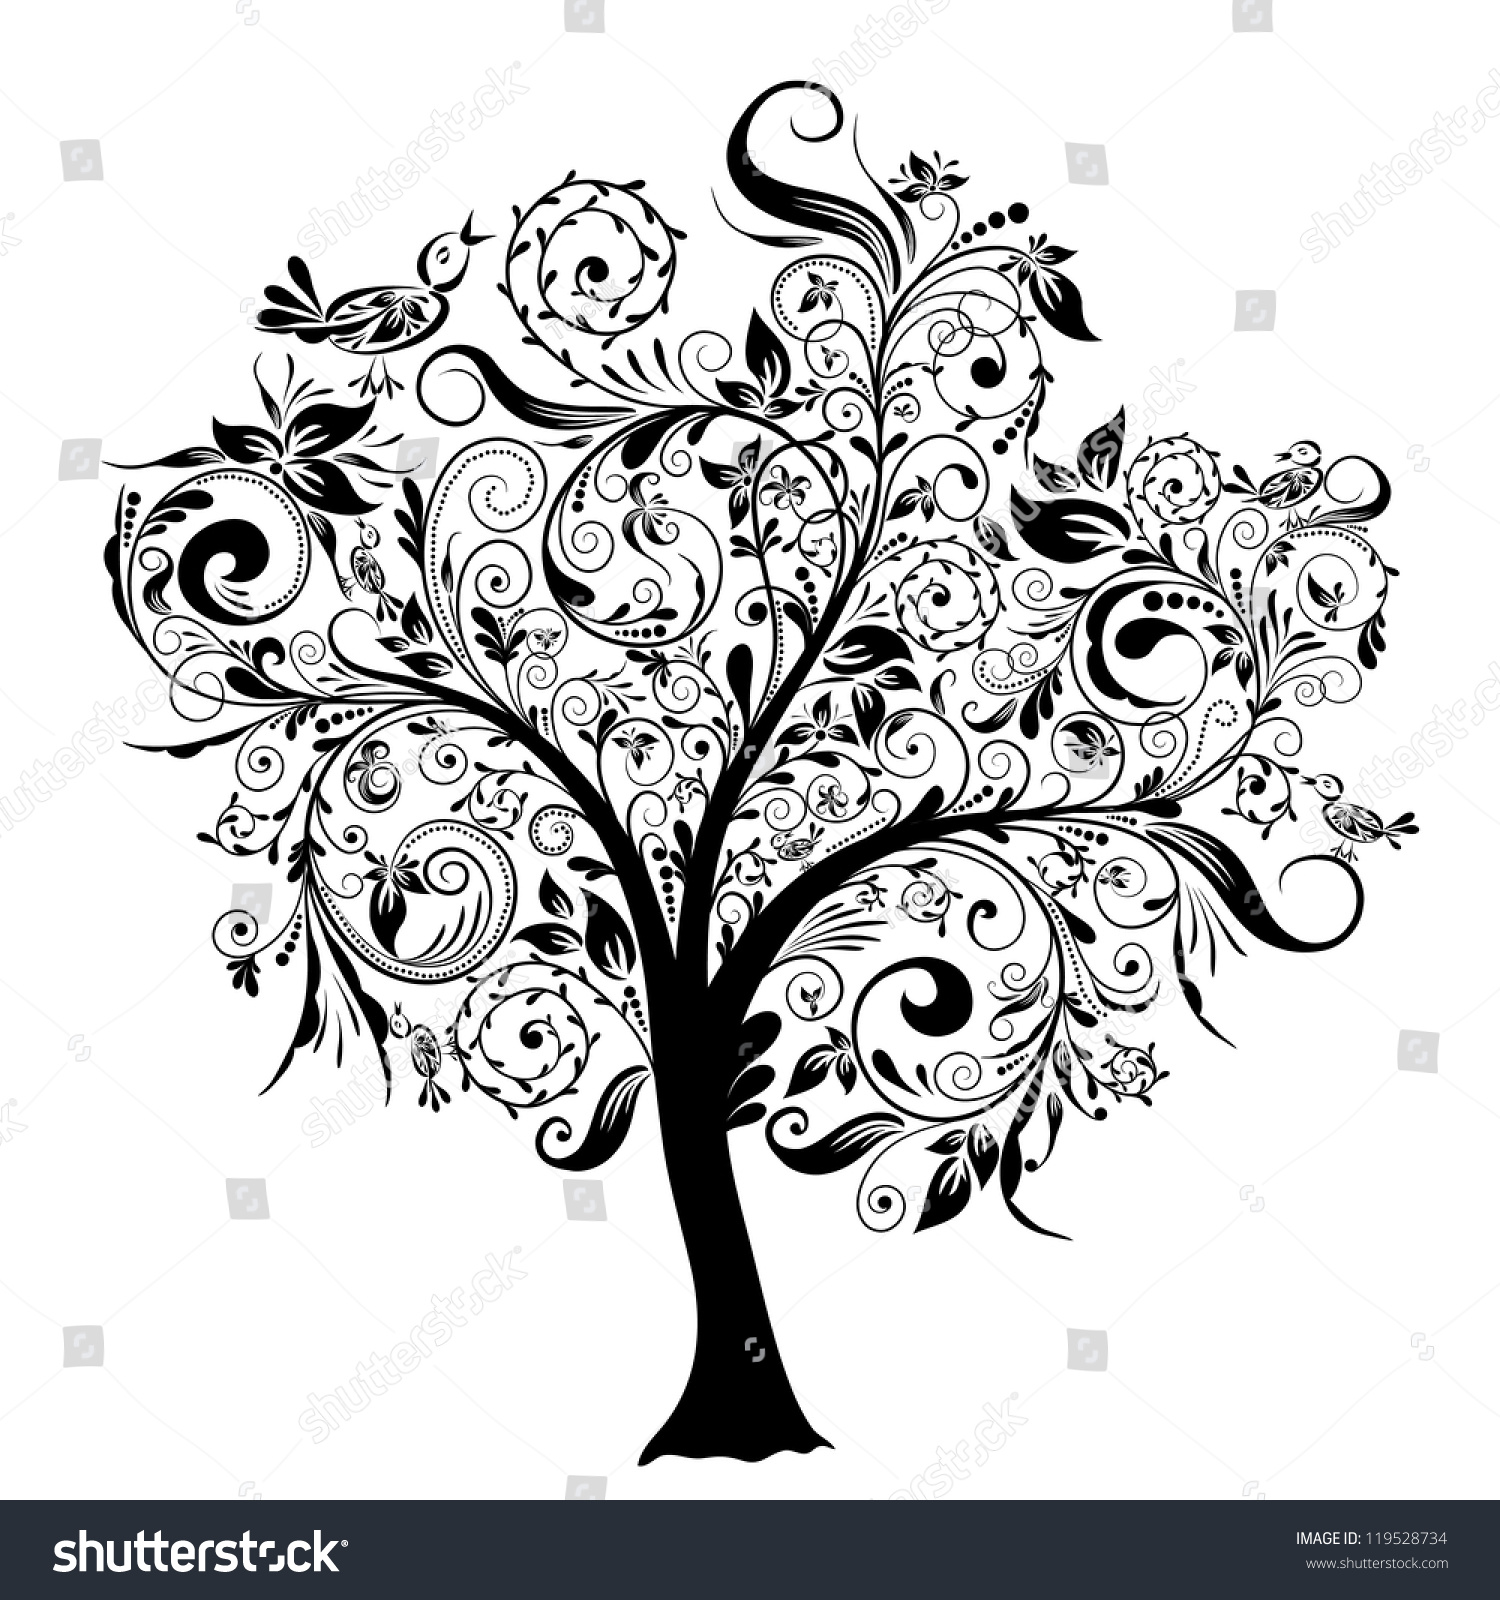 knowledge an evolution layer decor houha videoblocks sprayed with tree of about canopy ngb video on earth spiritual decorative concept thumbnail water and miniature r placed round book open